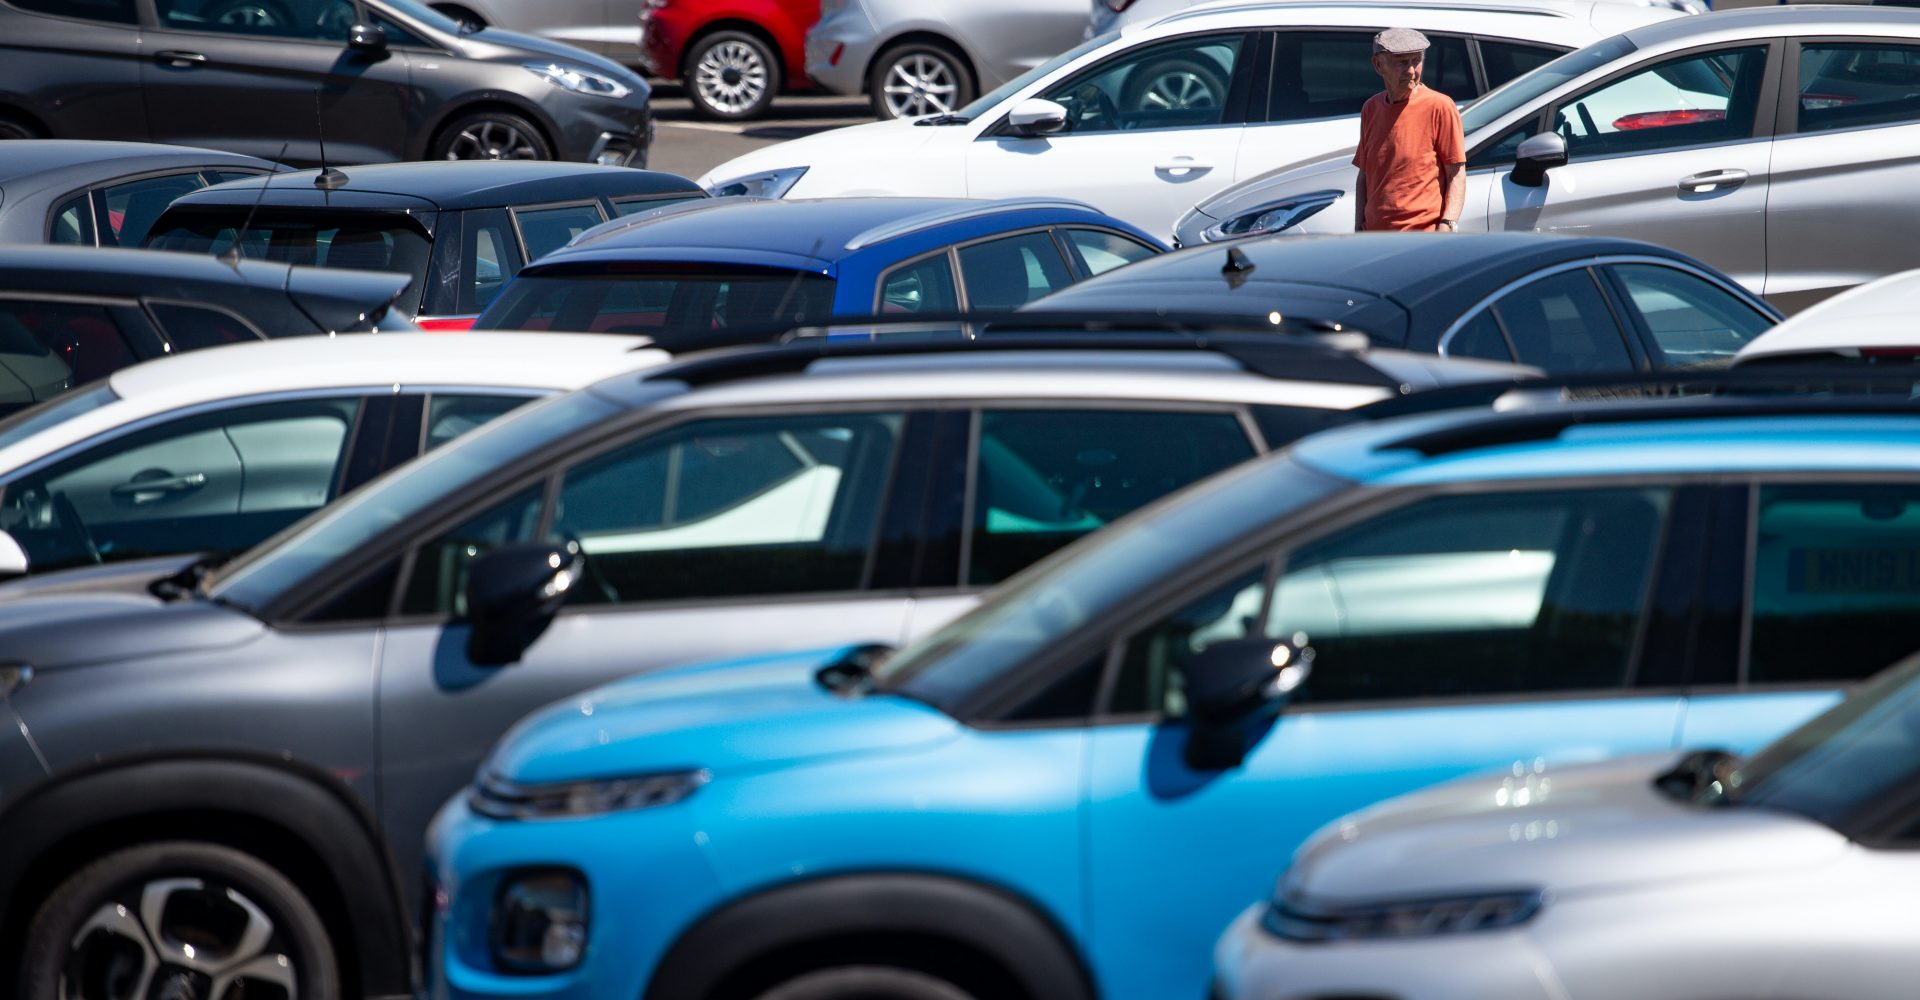 Buyers confused by extensive options lists are spending less on cars as a result